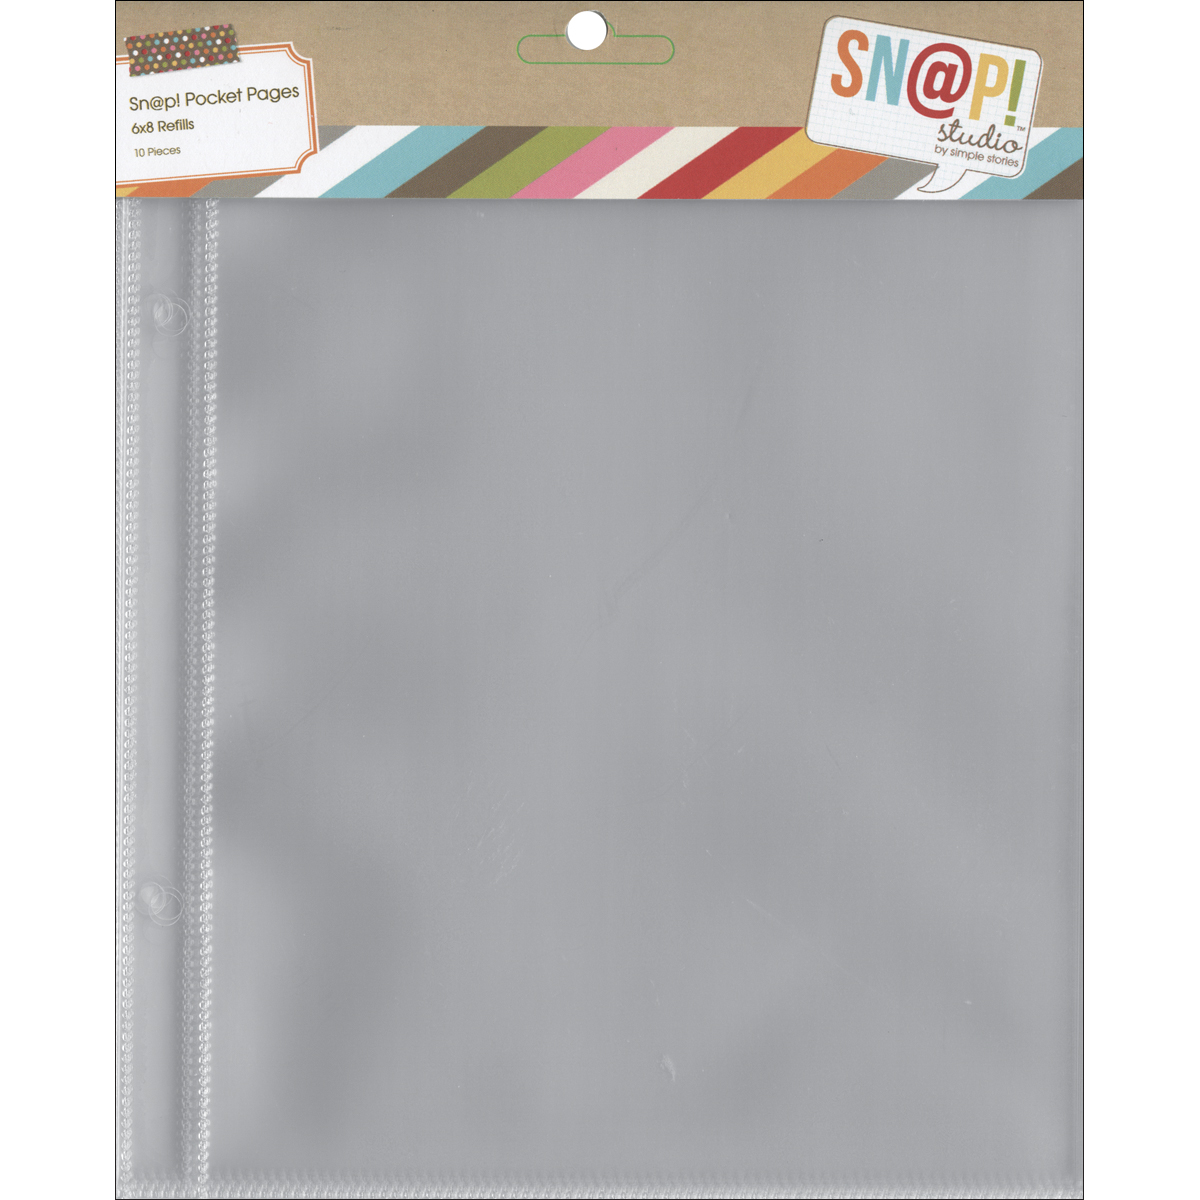 Simple Stories Sn@p! Pocket Pages For 6X8 Binders 10/Pkg-(1) 6X8 Pocket